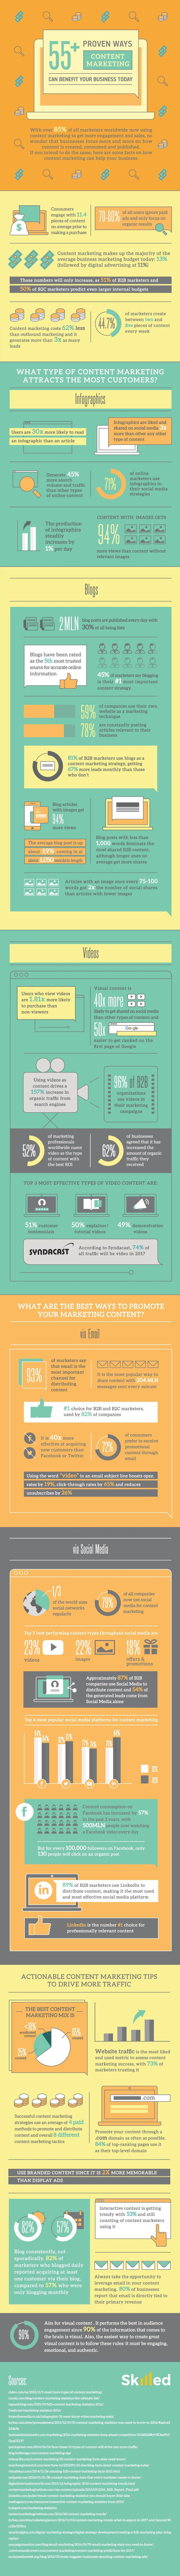 Small Businesses should use Content Marketing - that's a fact. Read this post and look at the infographic to find out why!